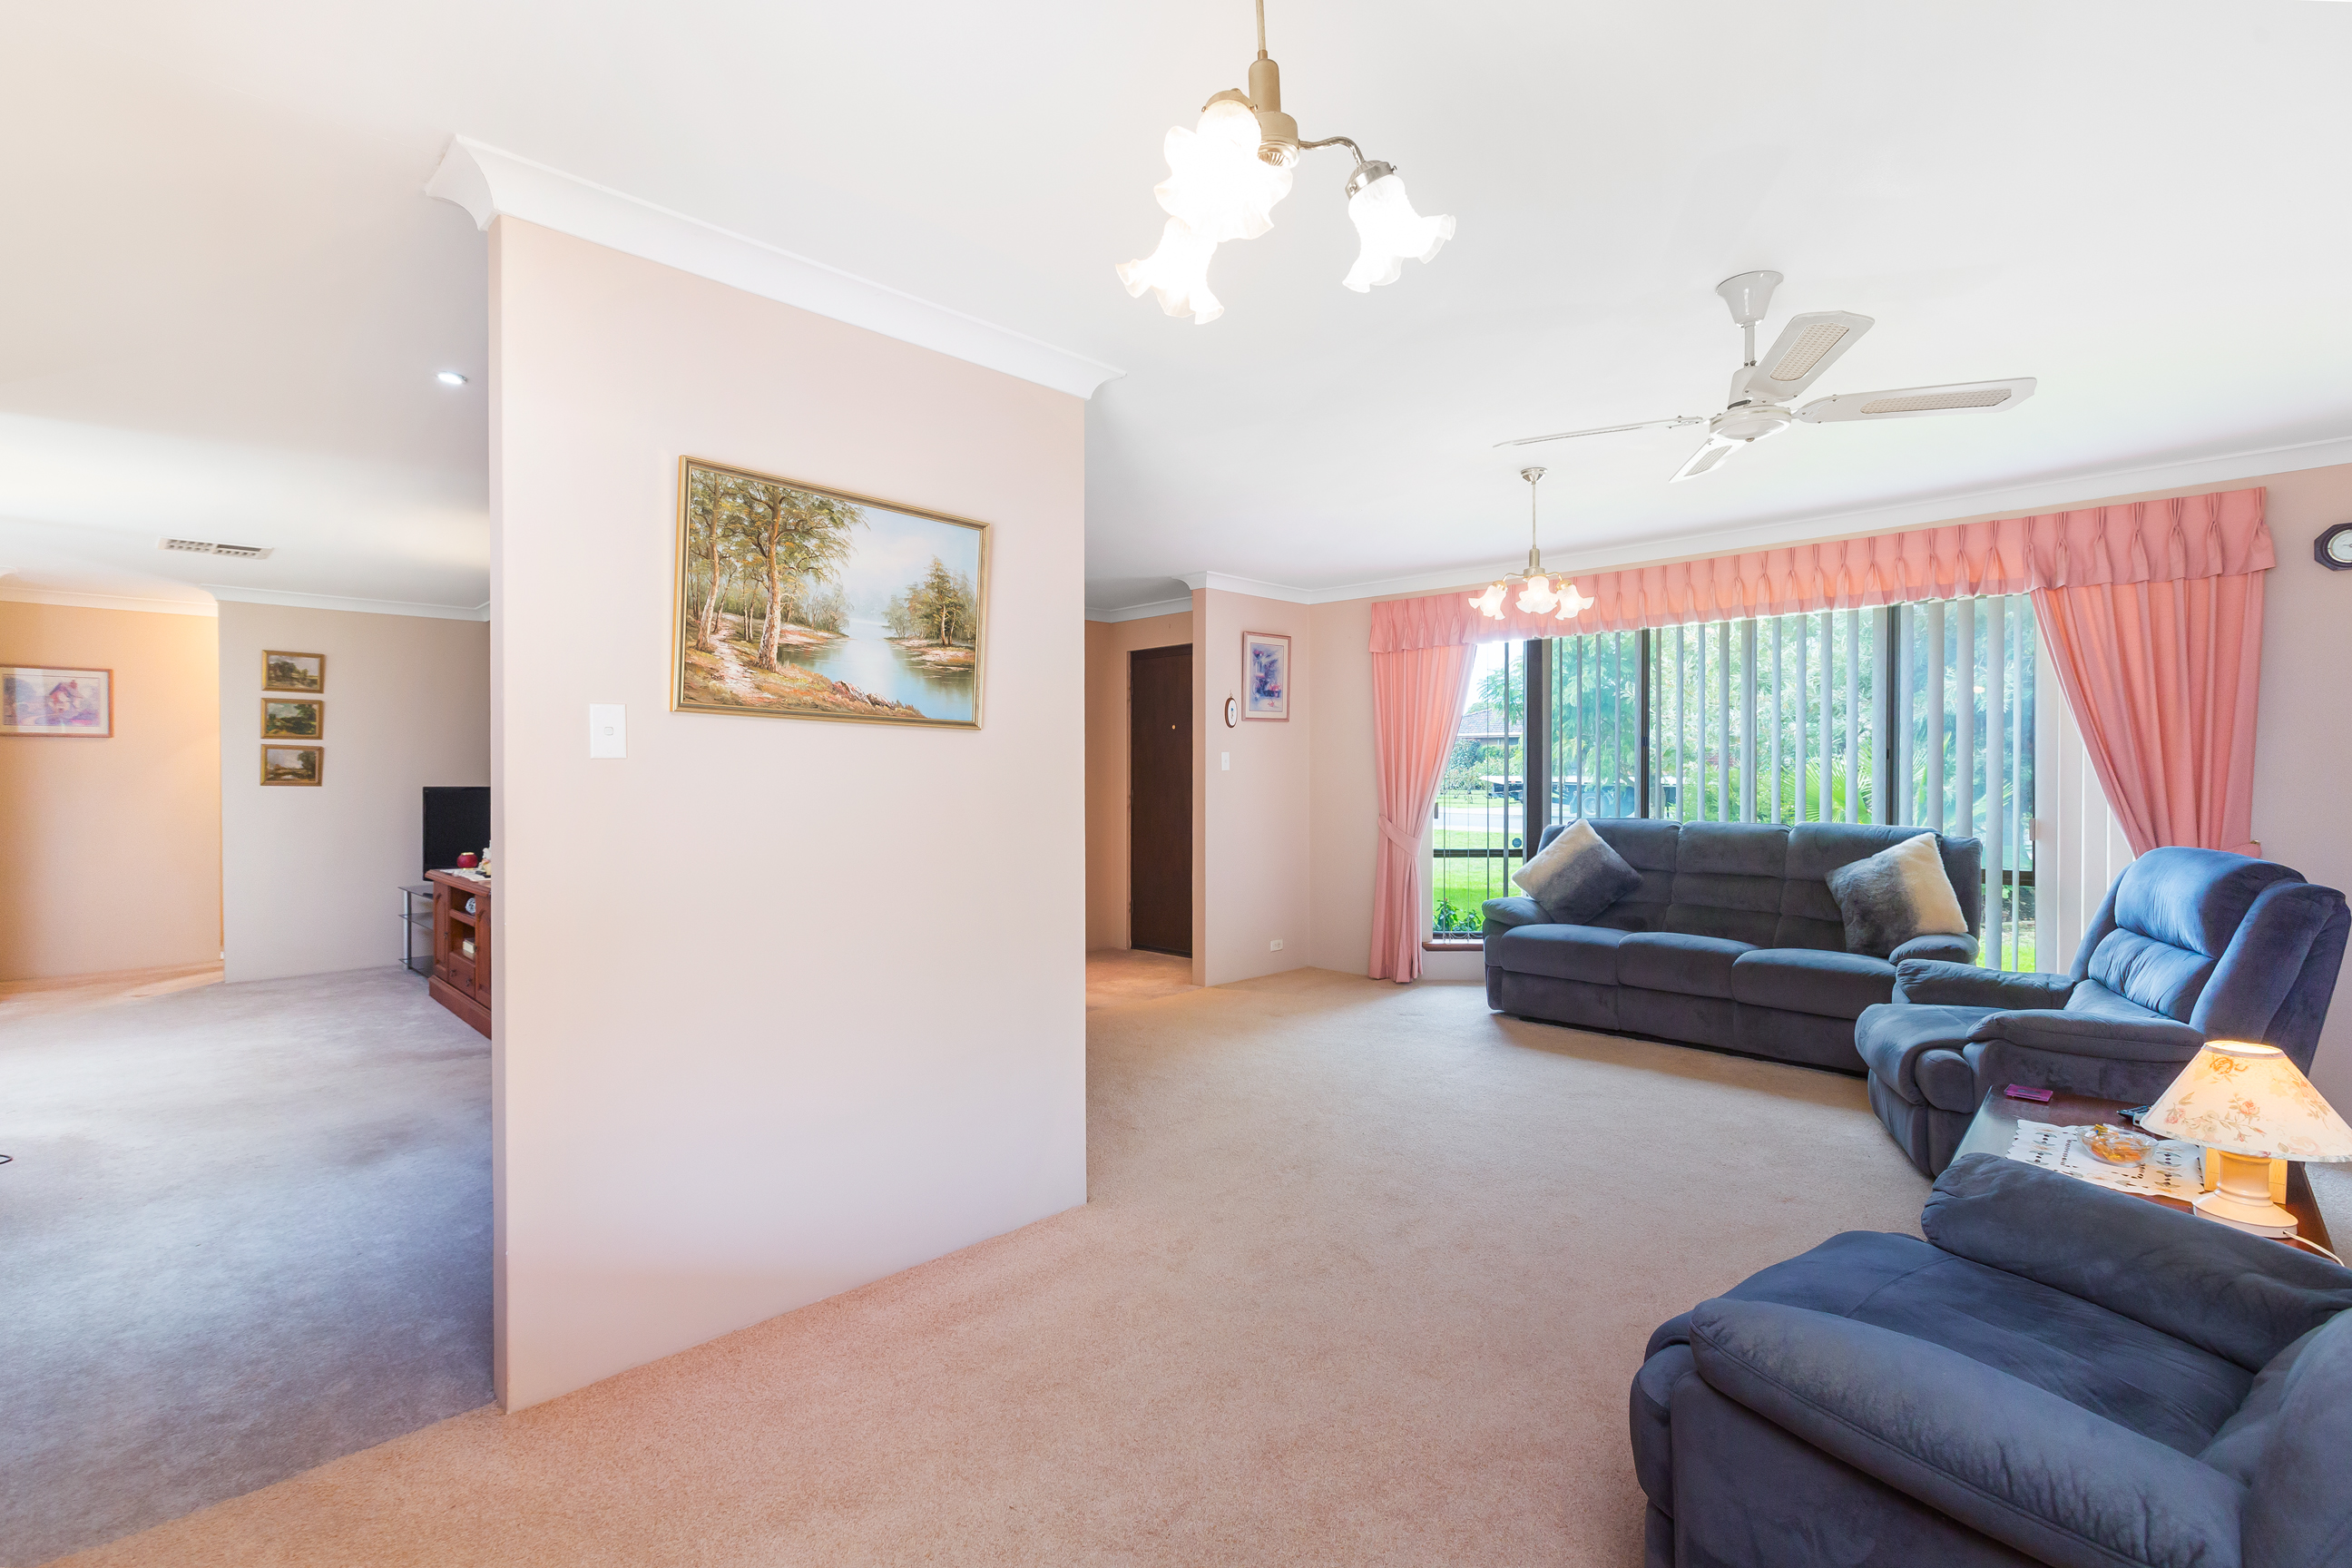 Property for sale in CAMILLO, 73 Westfield Road : Attree Real Estate